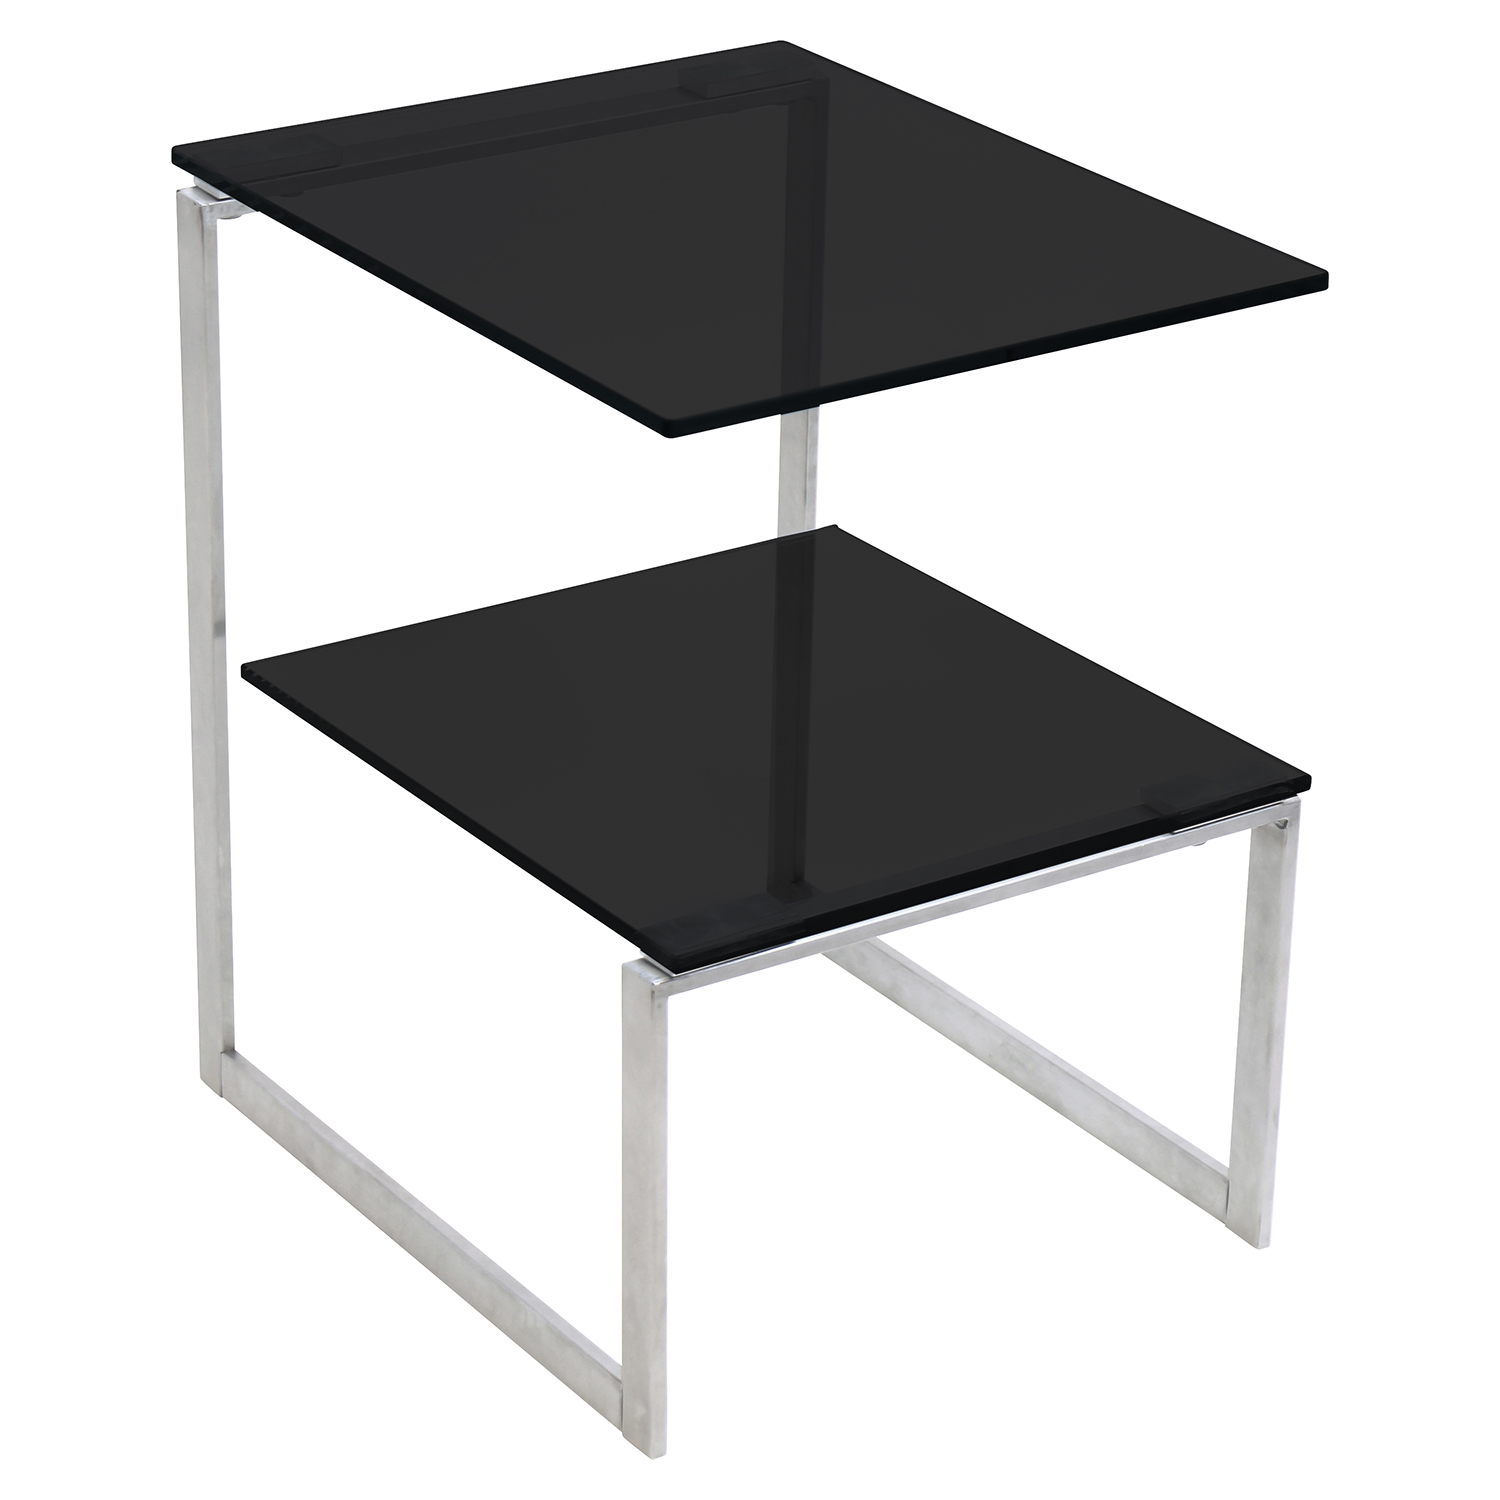 6G Rectangular End Table - Black